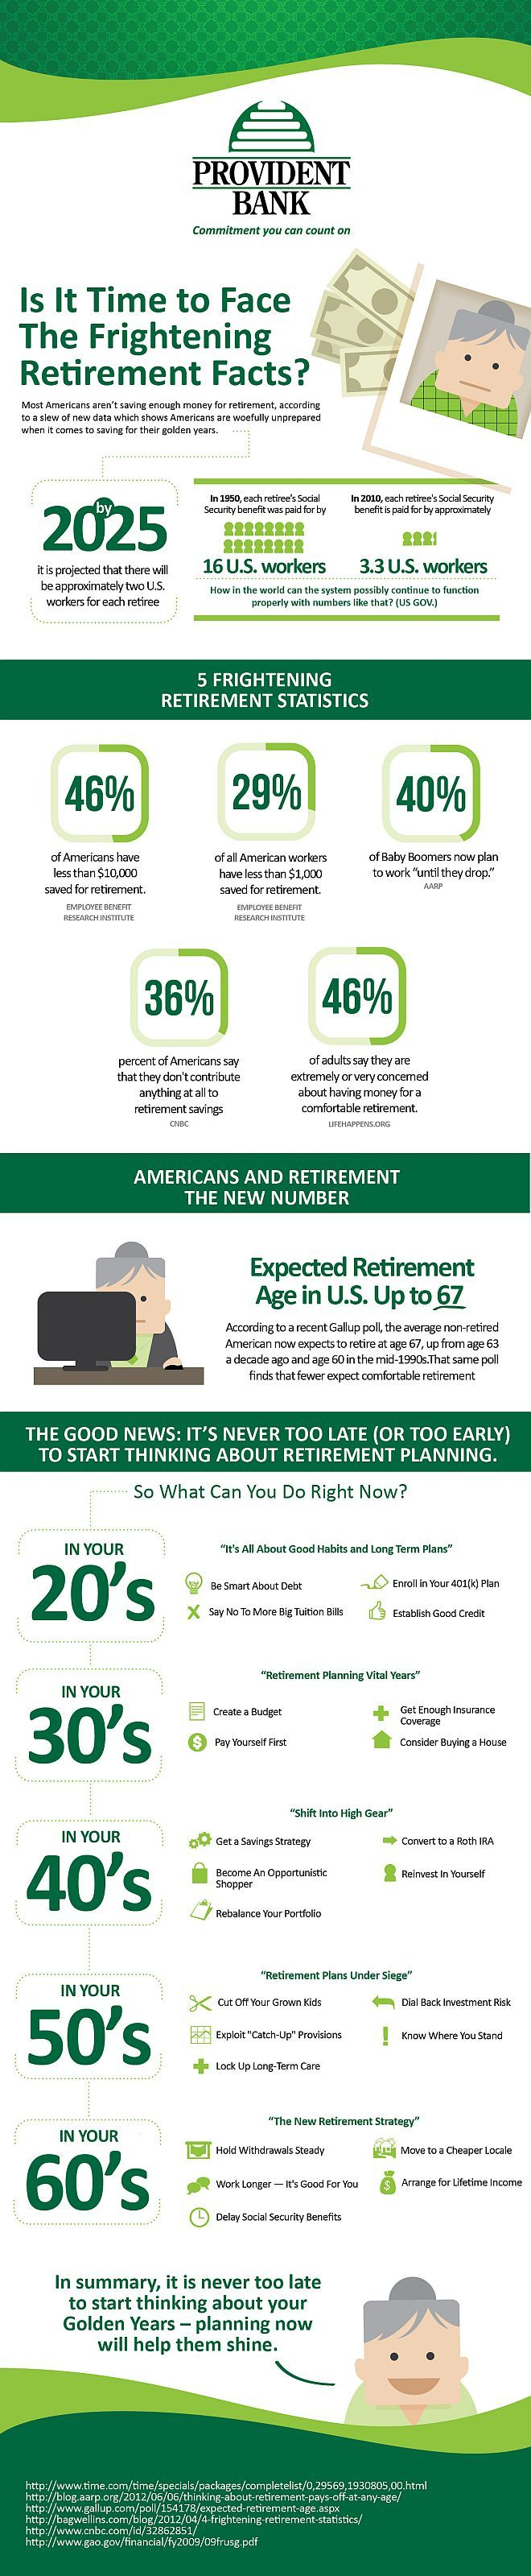 Most Americans are not planning for retirement; in fact many have yet to put any money towards retiring